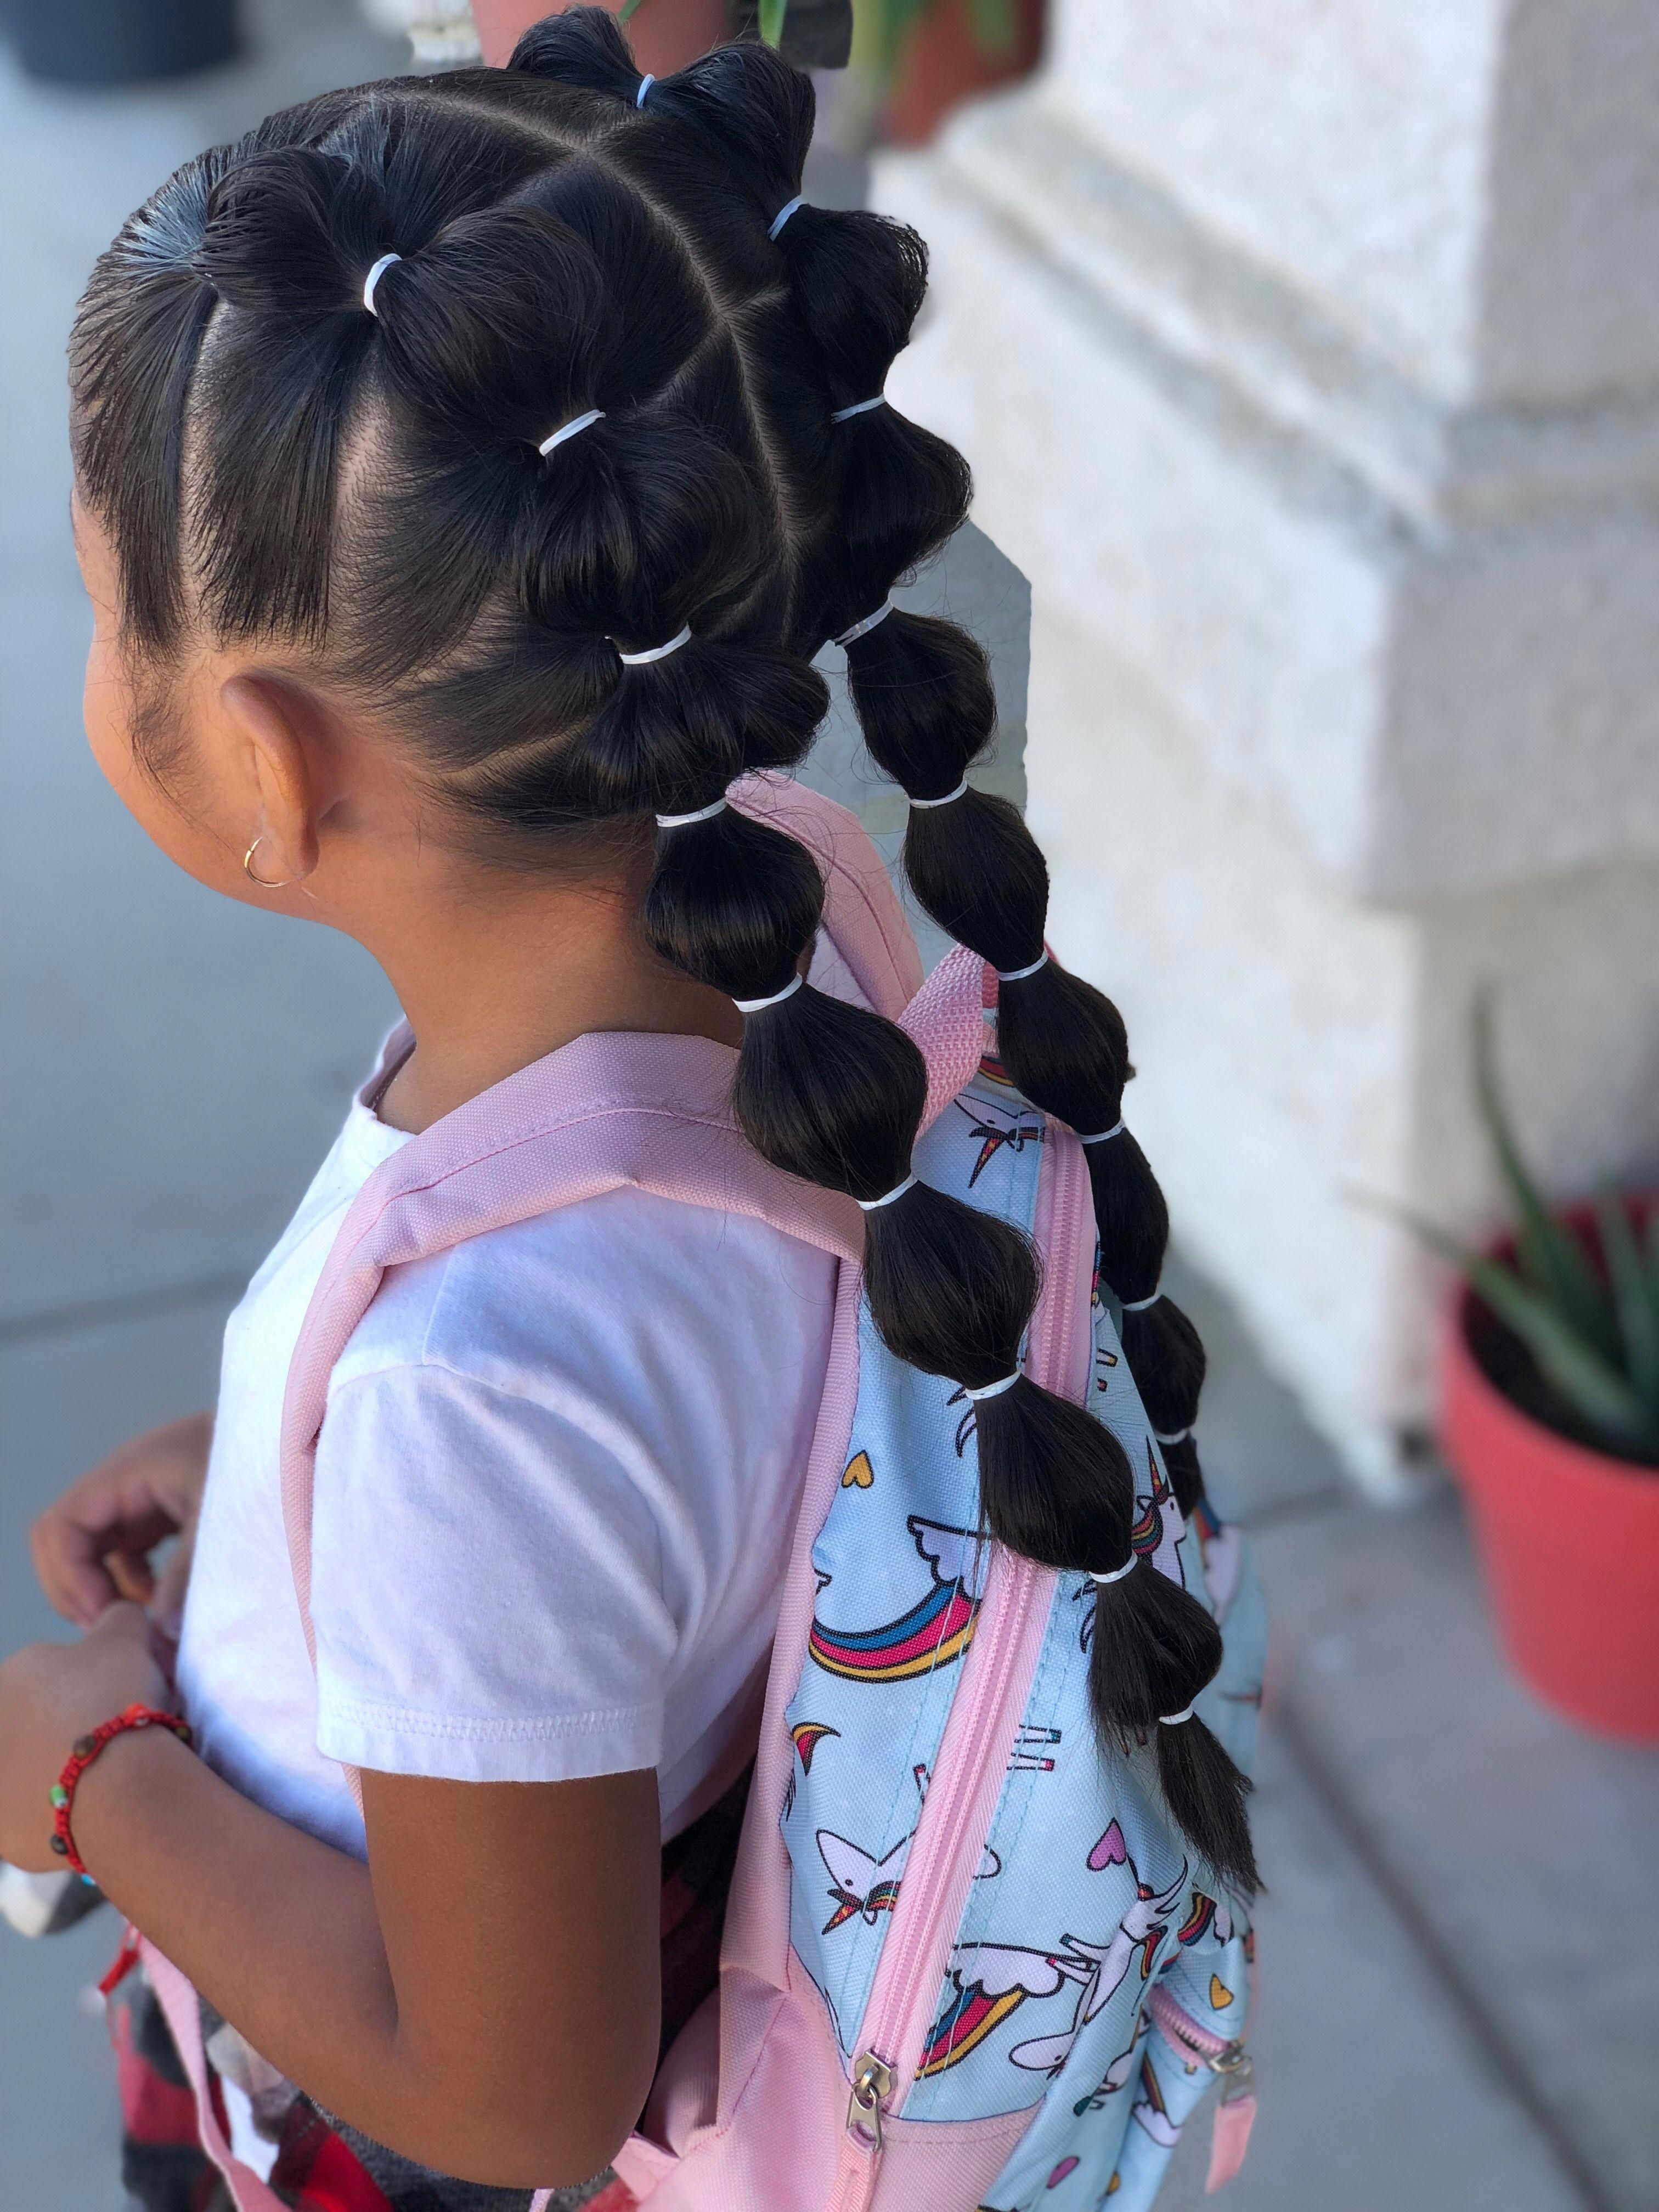 Hairstyles For Short Curly Hair Short Hair For Kid Girl Types Of Haircut For Female 20190529 Short Hair For Kids Girl Hair Dos Kids Curly Hairstyles